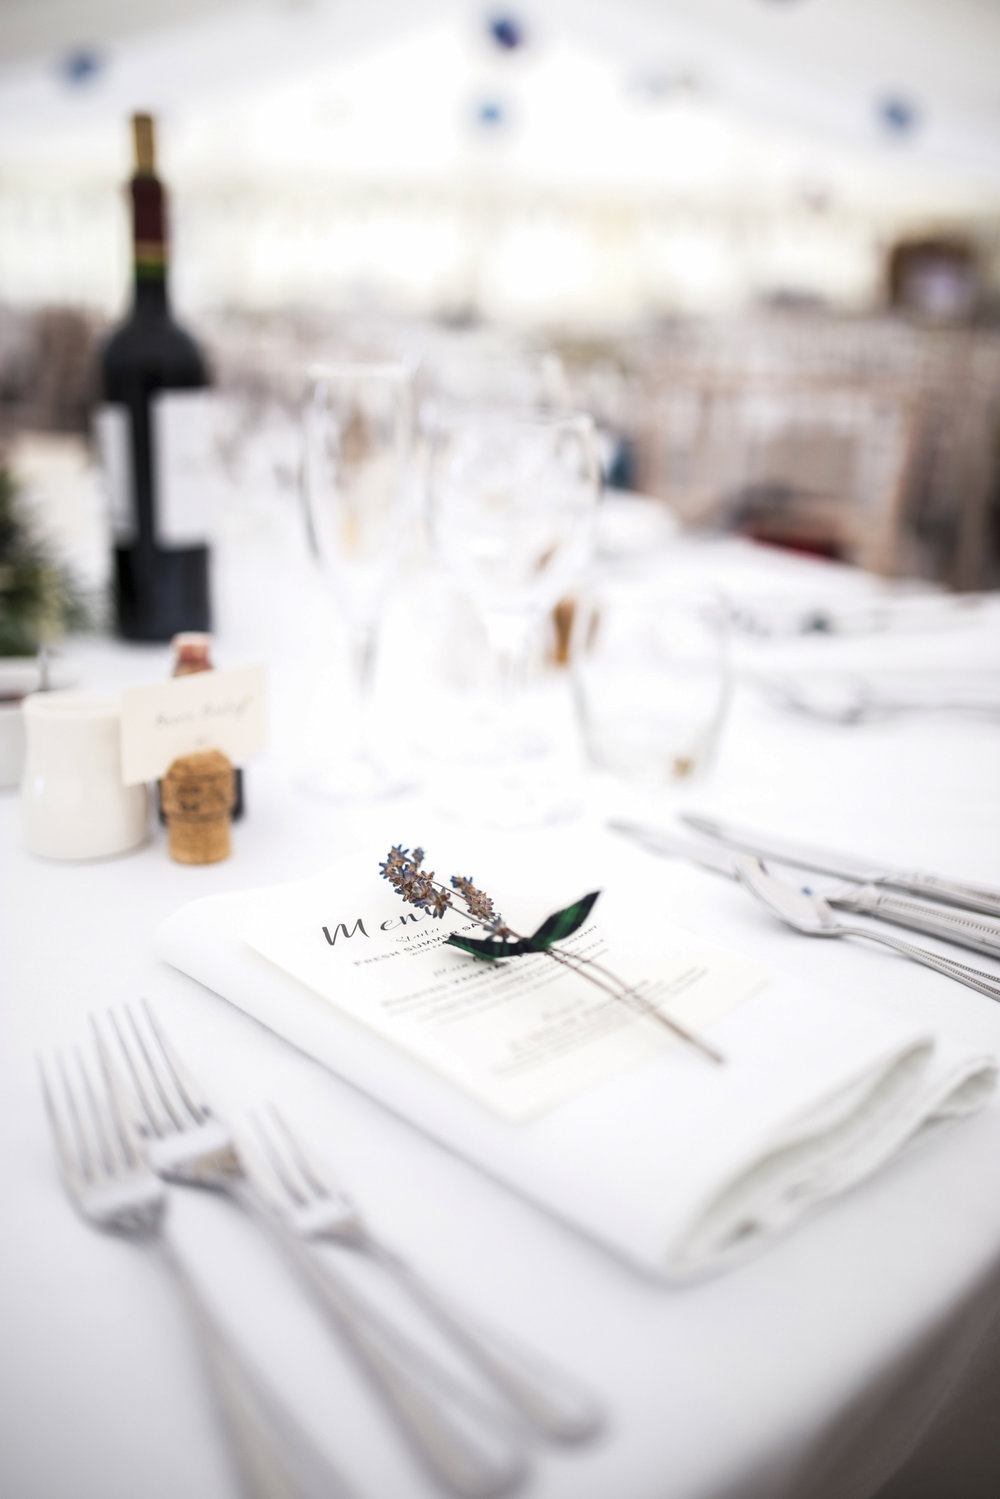 Wedding menu, table scape, wedding details,